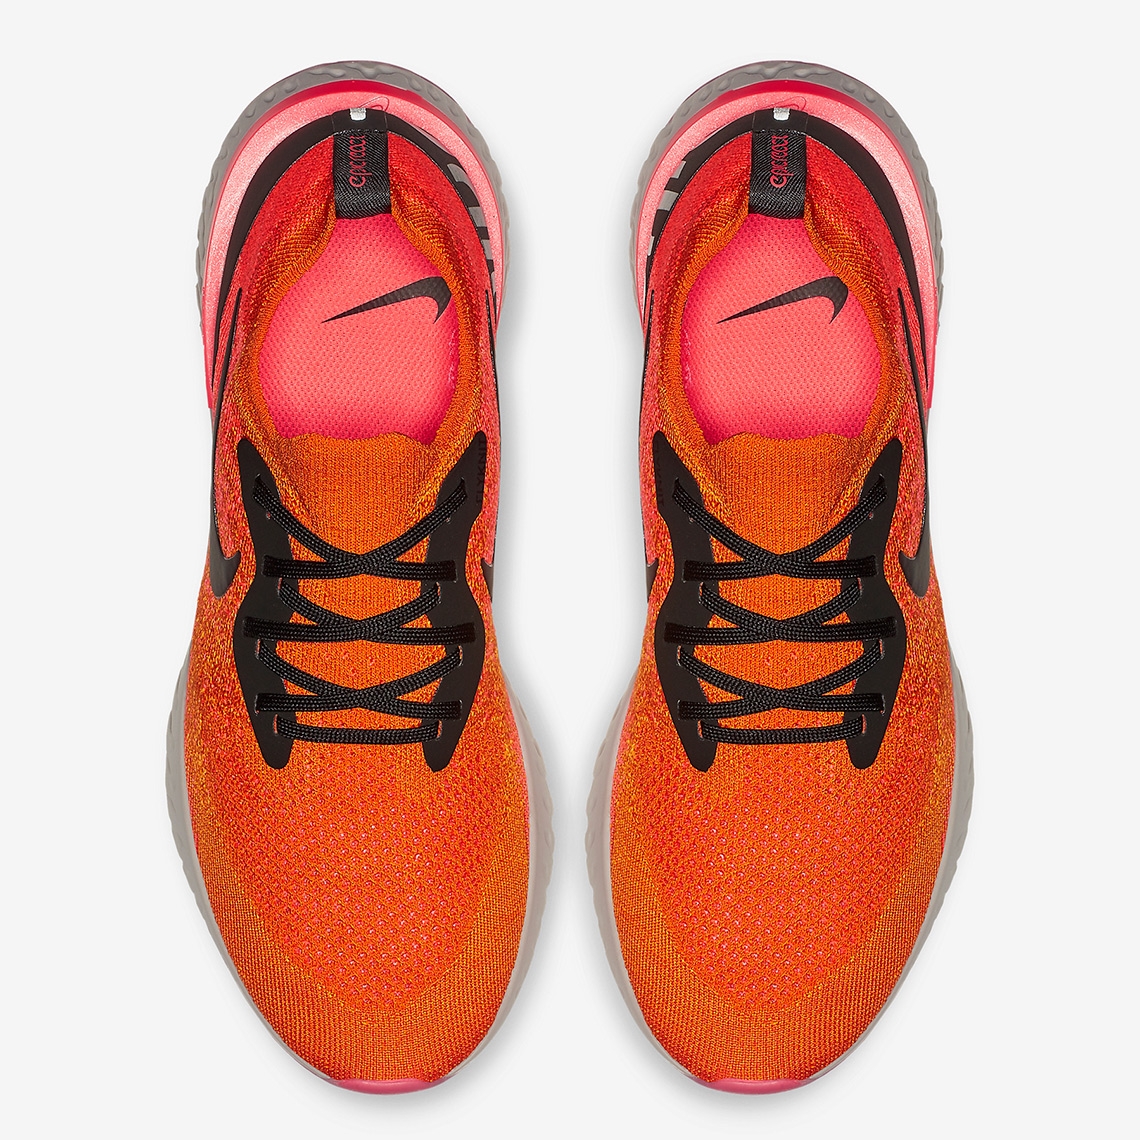 95ba8a23bbb6d ... discount code for nike epic react release date september 22nd 2018 150.  color tea berry